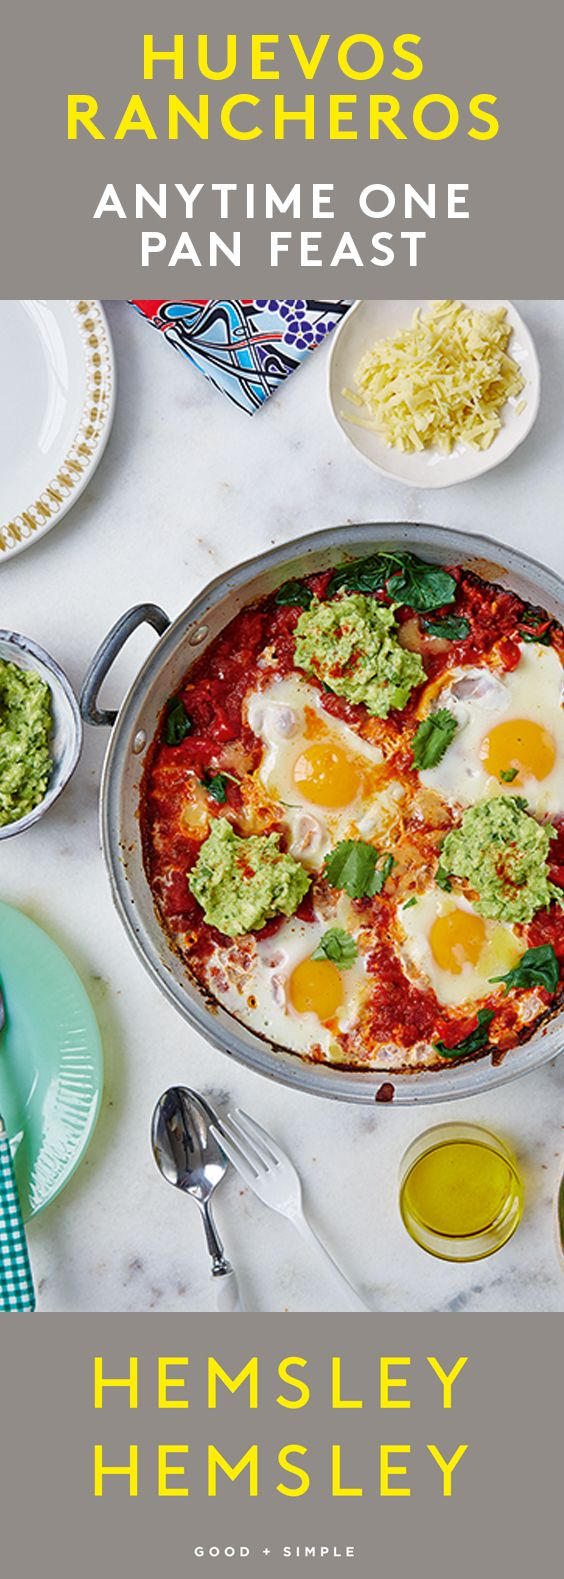 We love pasture reared eggs for breakfast, lunch and supper and this satisfying dish also makes a favourite weekend brunch. It comes together in no time at all, leaving you plenty of time to potter around, read the papers, and relax. The fiery rich red sa